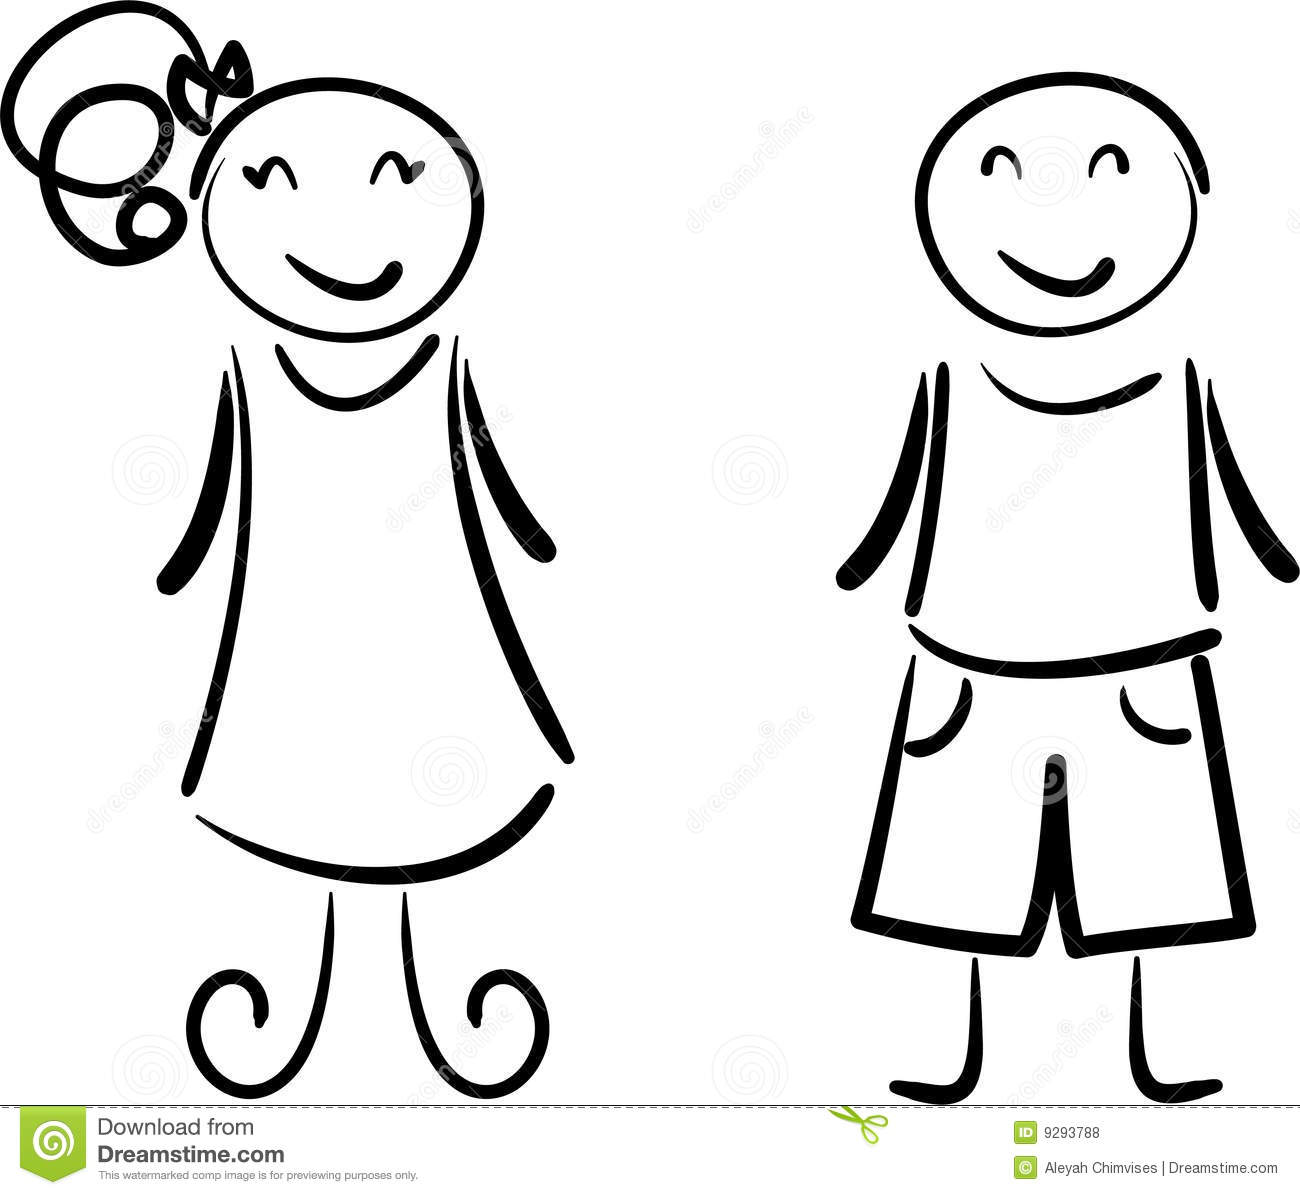 Simple drawing of happy boy and girl